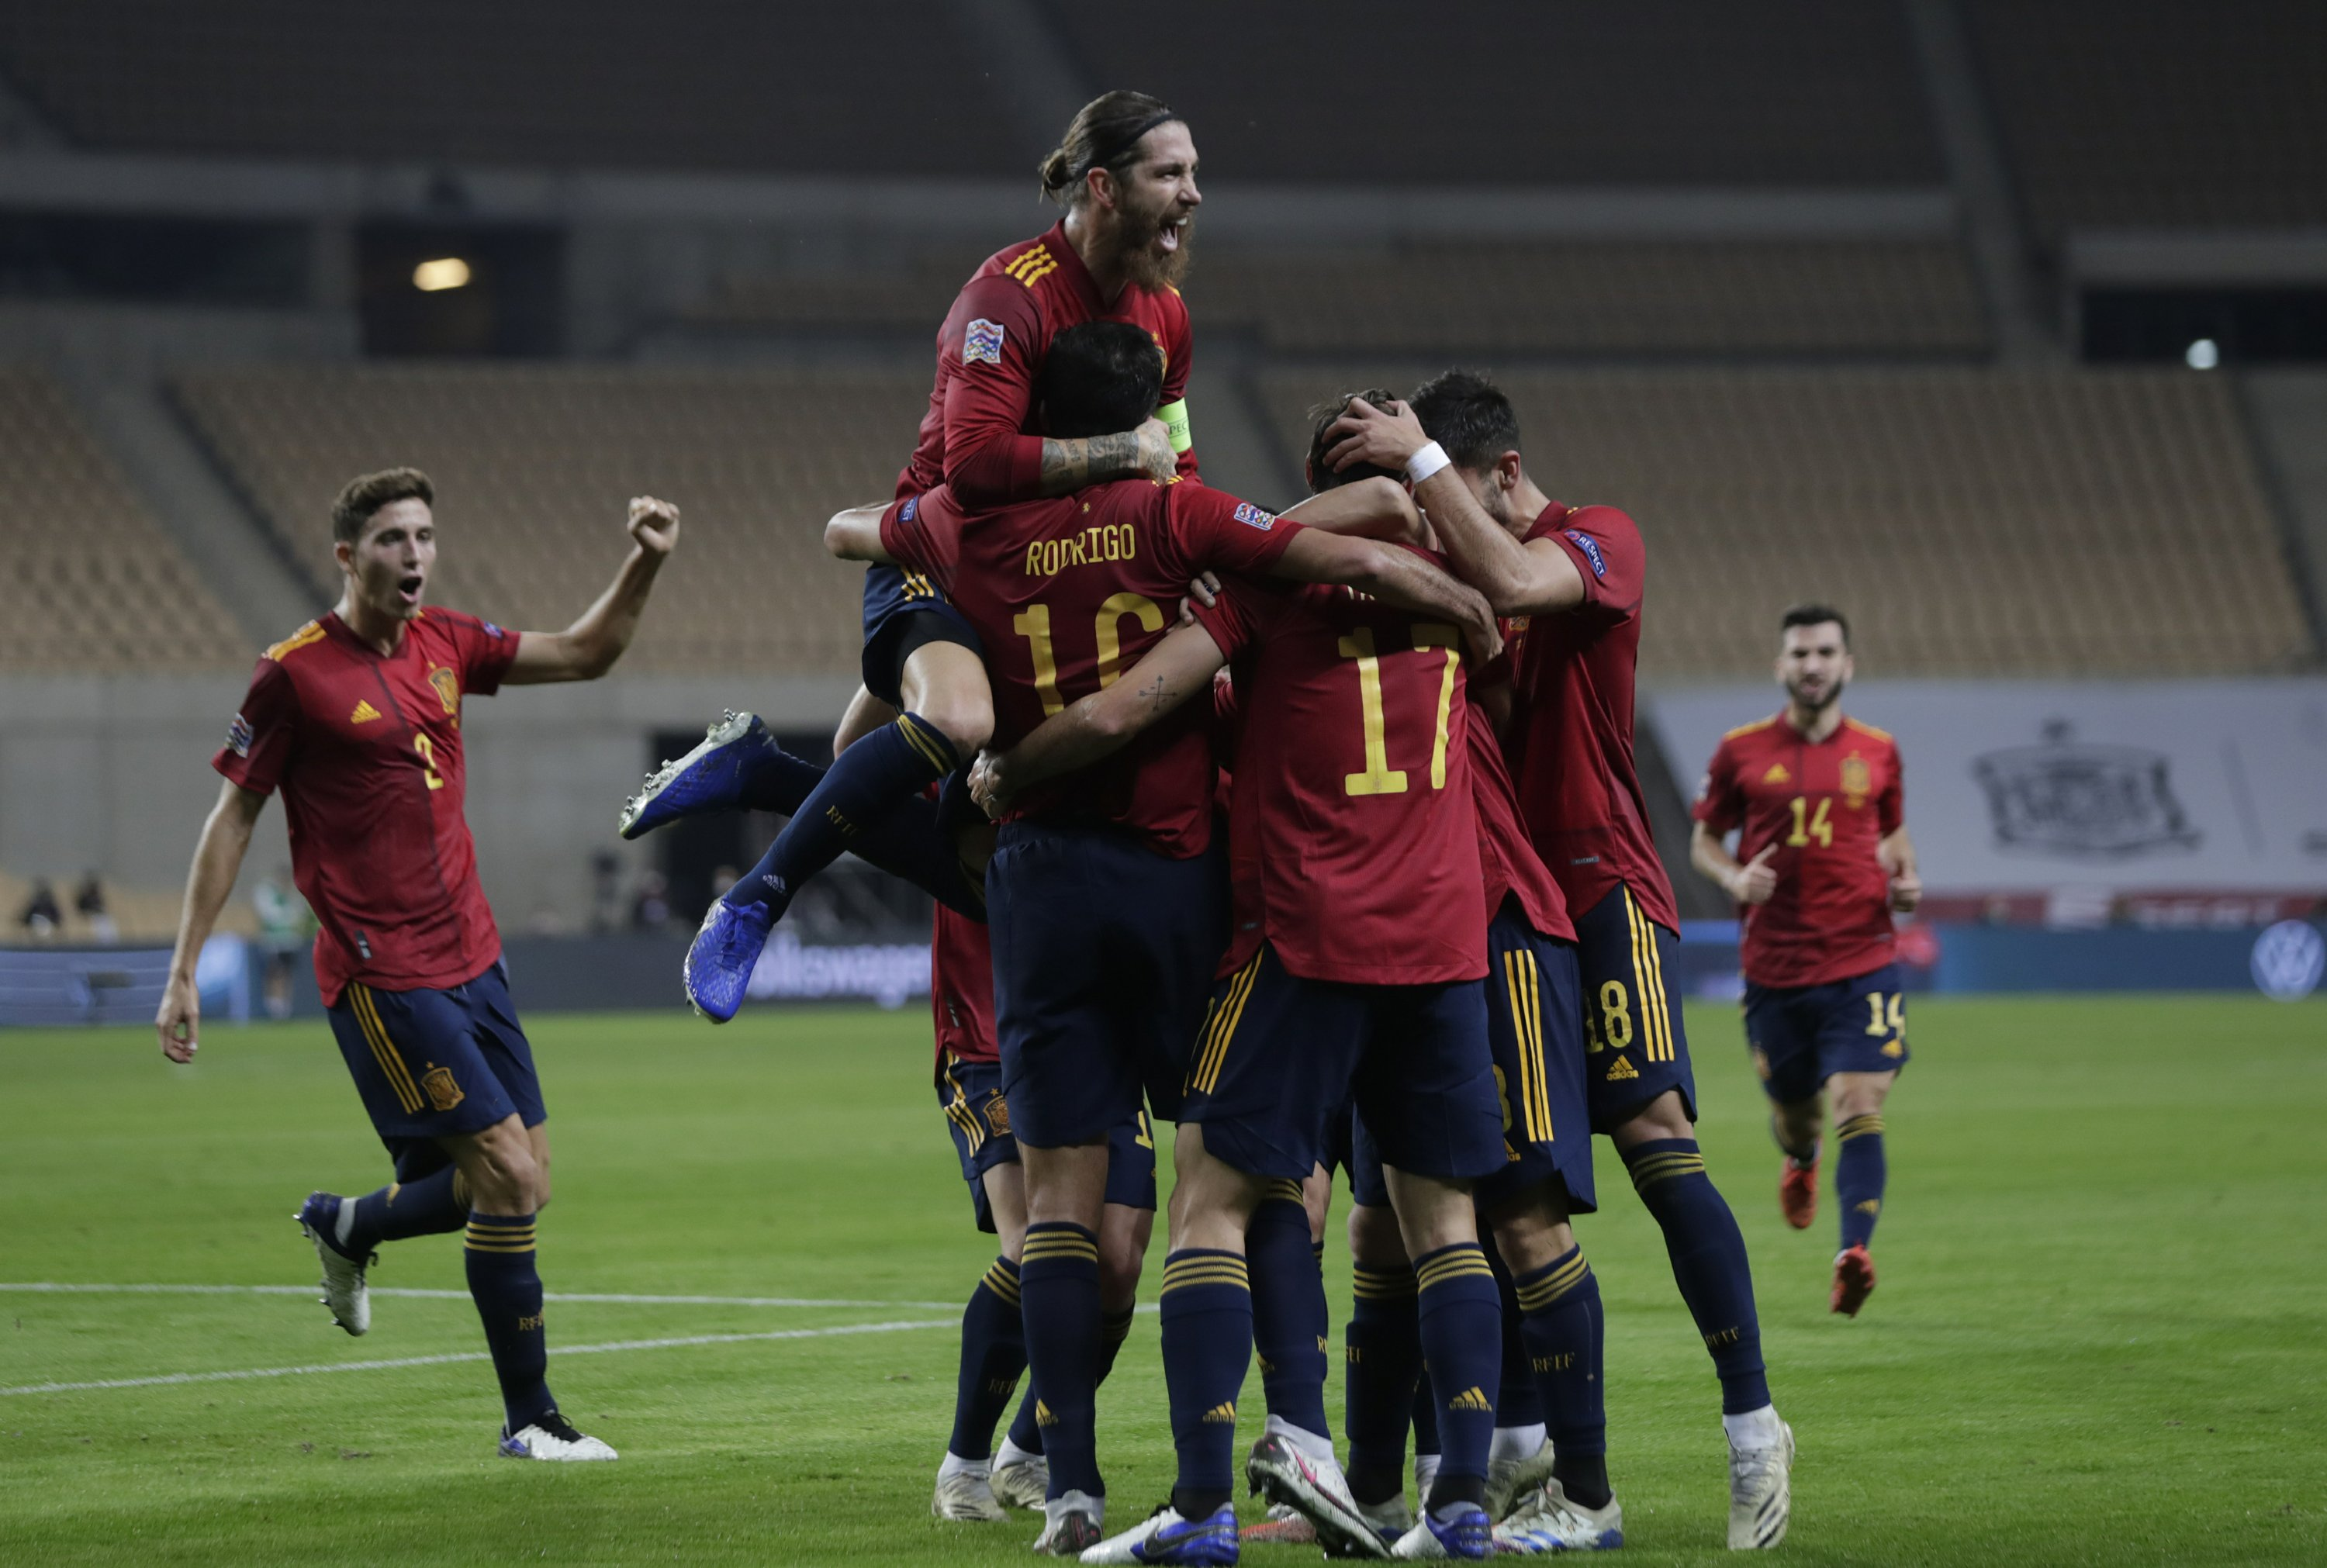 Spain hands Germany worst defeat, 6-0 in Nations League